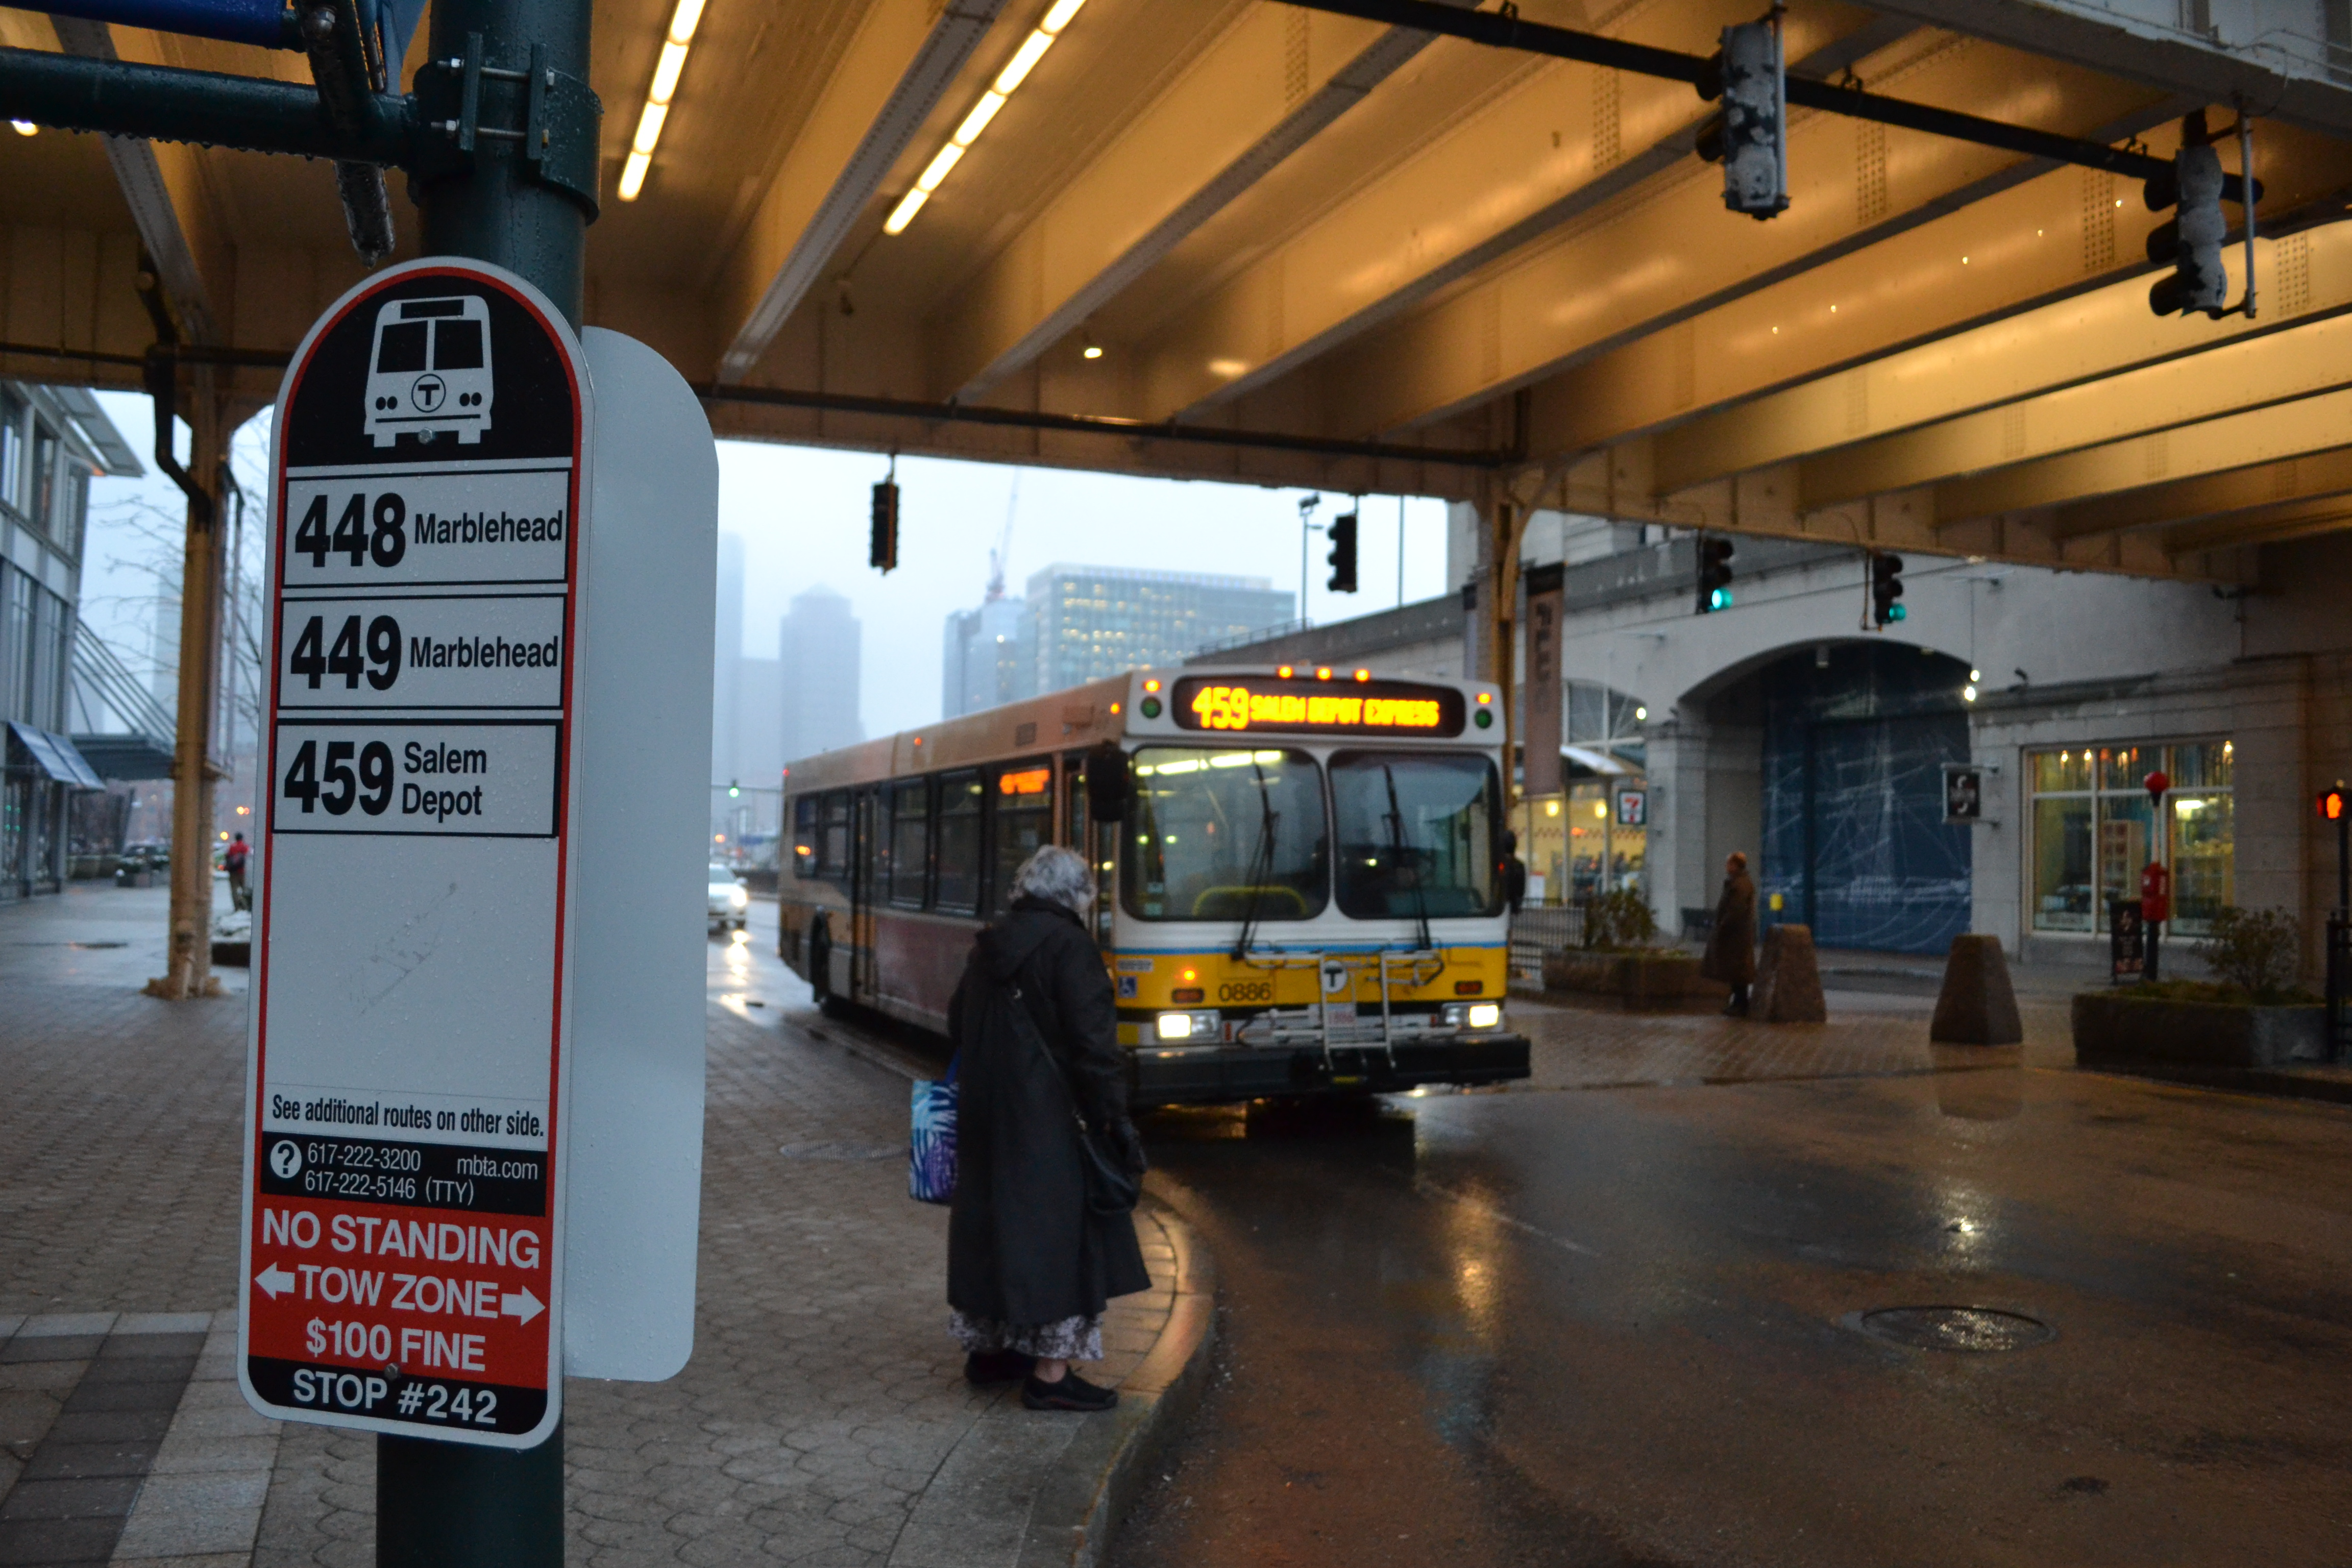 File:MBTA route 459 bus at World Trade Center jpg - Wikimedia Commons